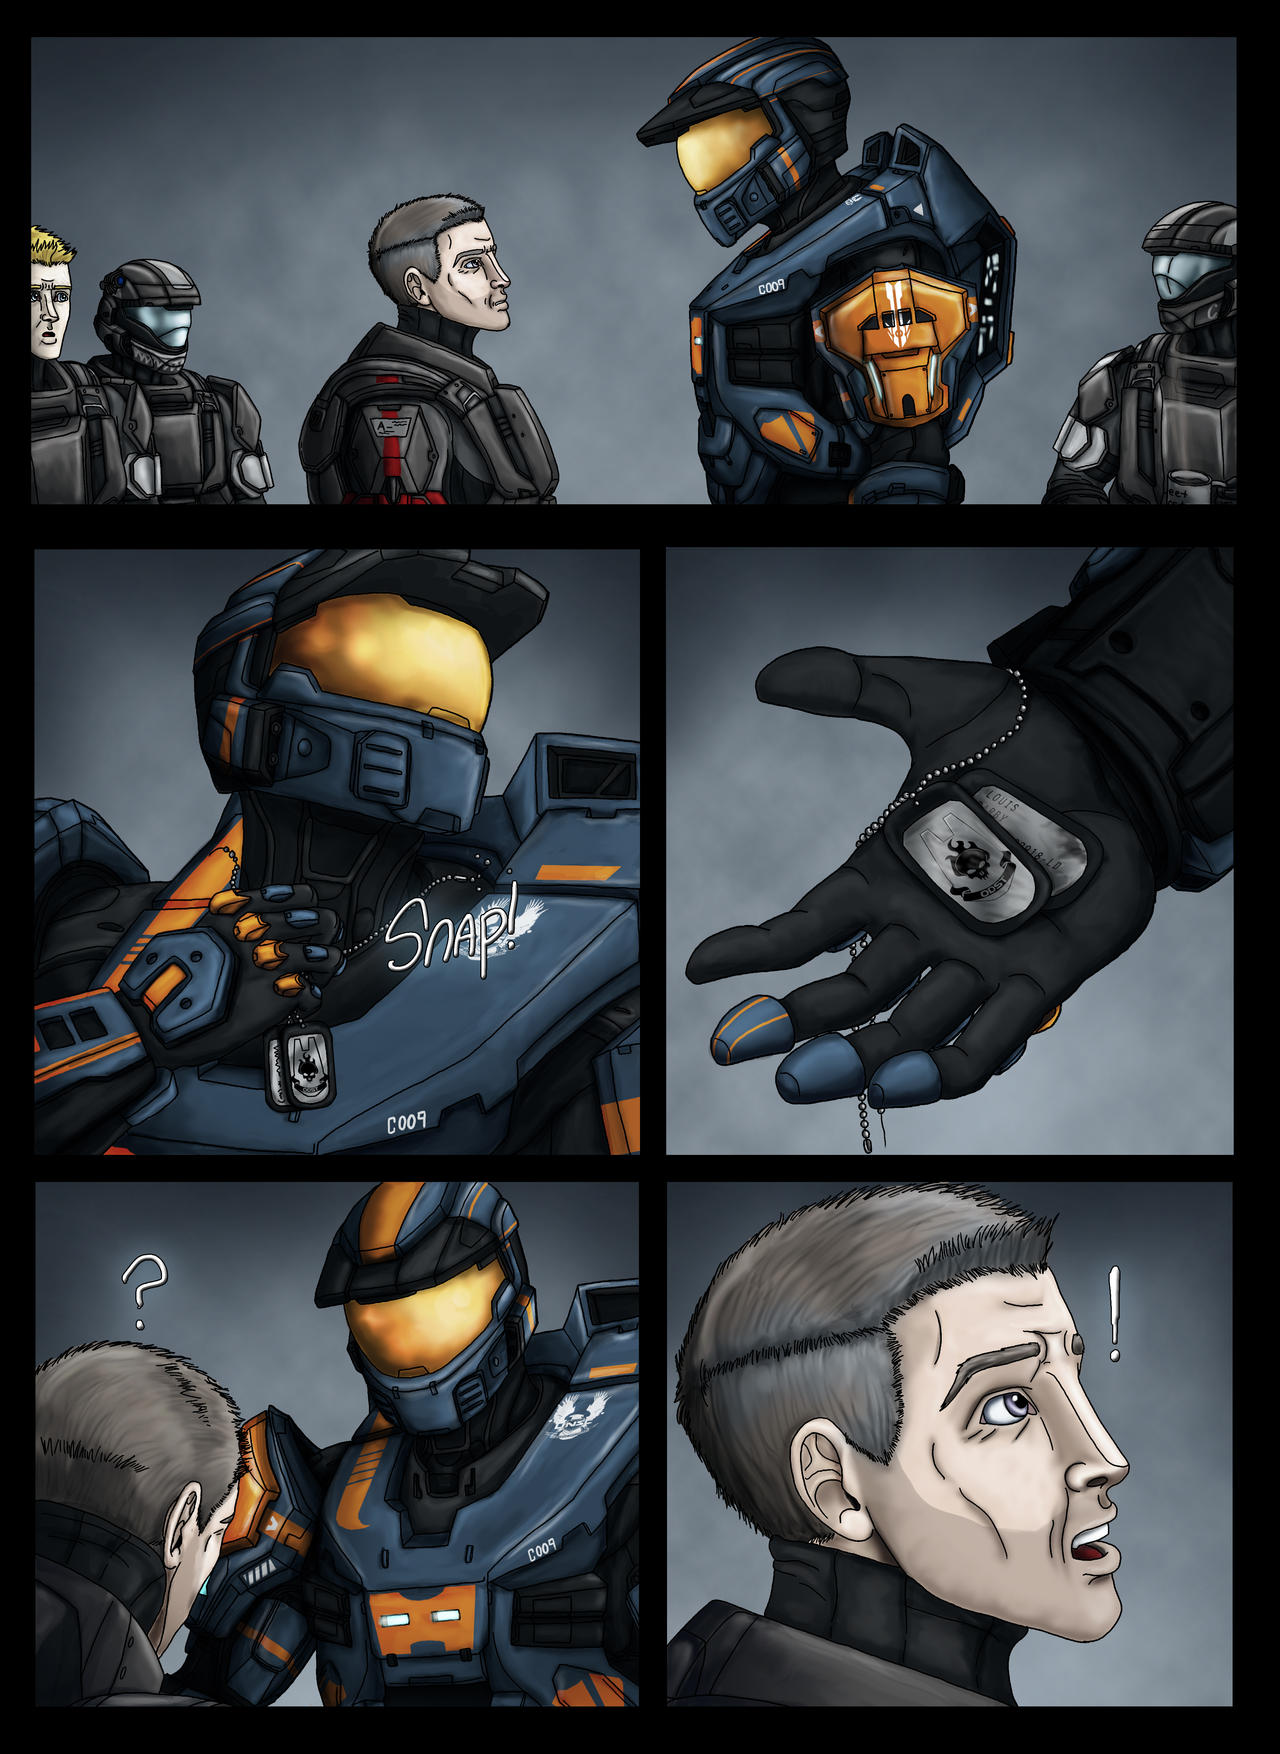 halo__dogtag_origins_page_2_by_guyver89-